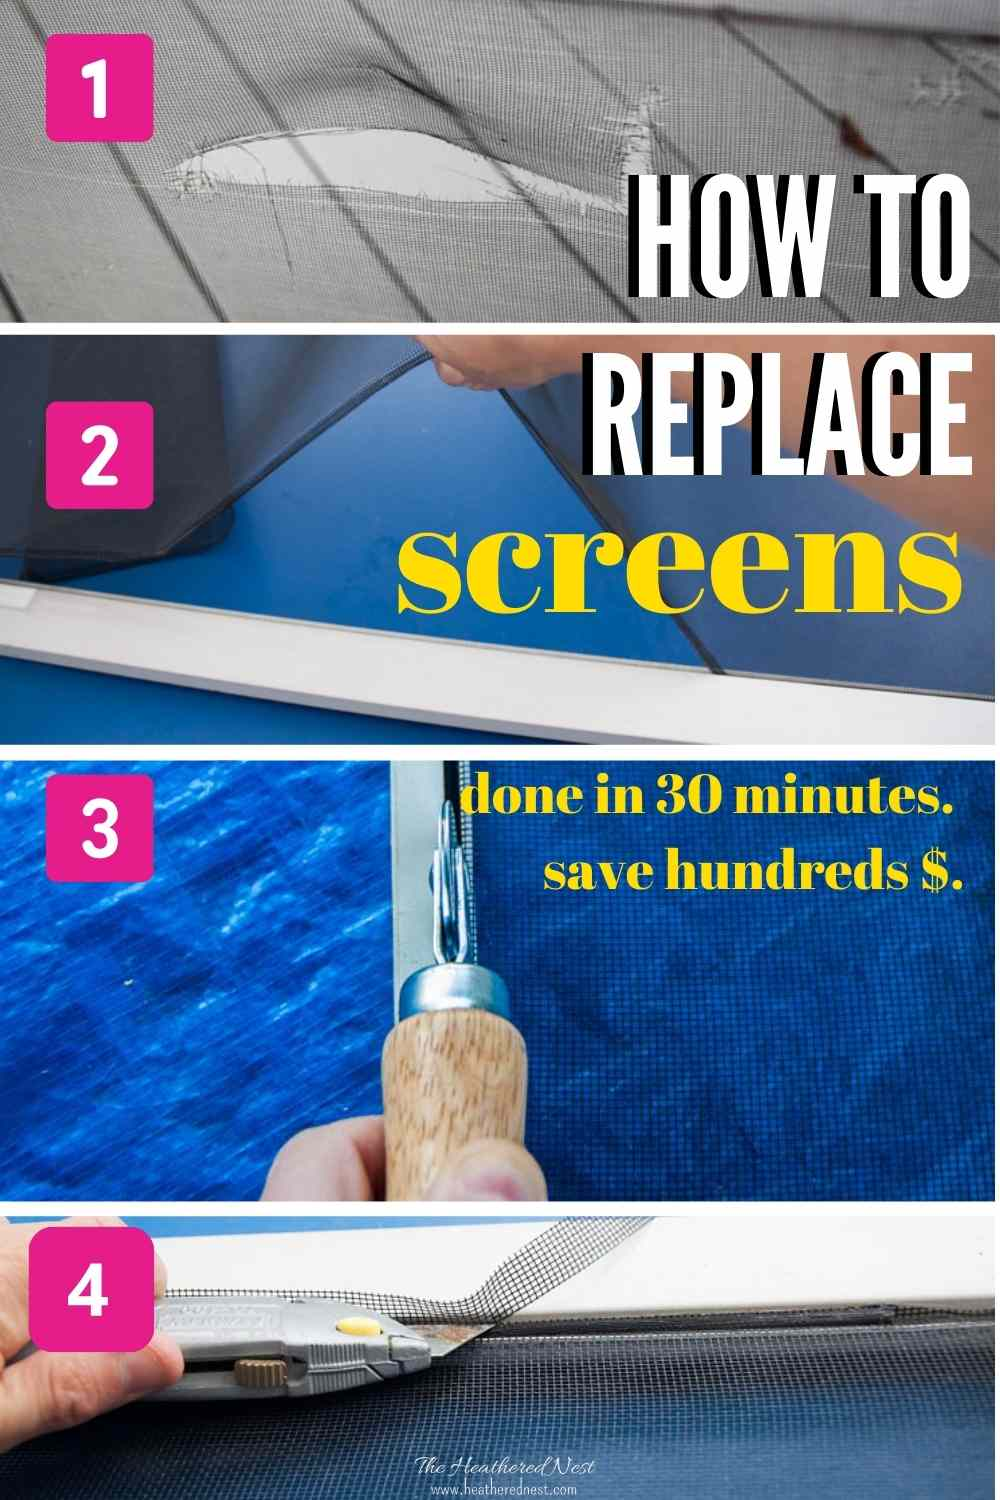 How to replace screens - done in 30 minutes, save hundreds - four step process shown.